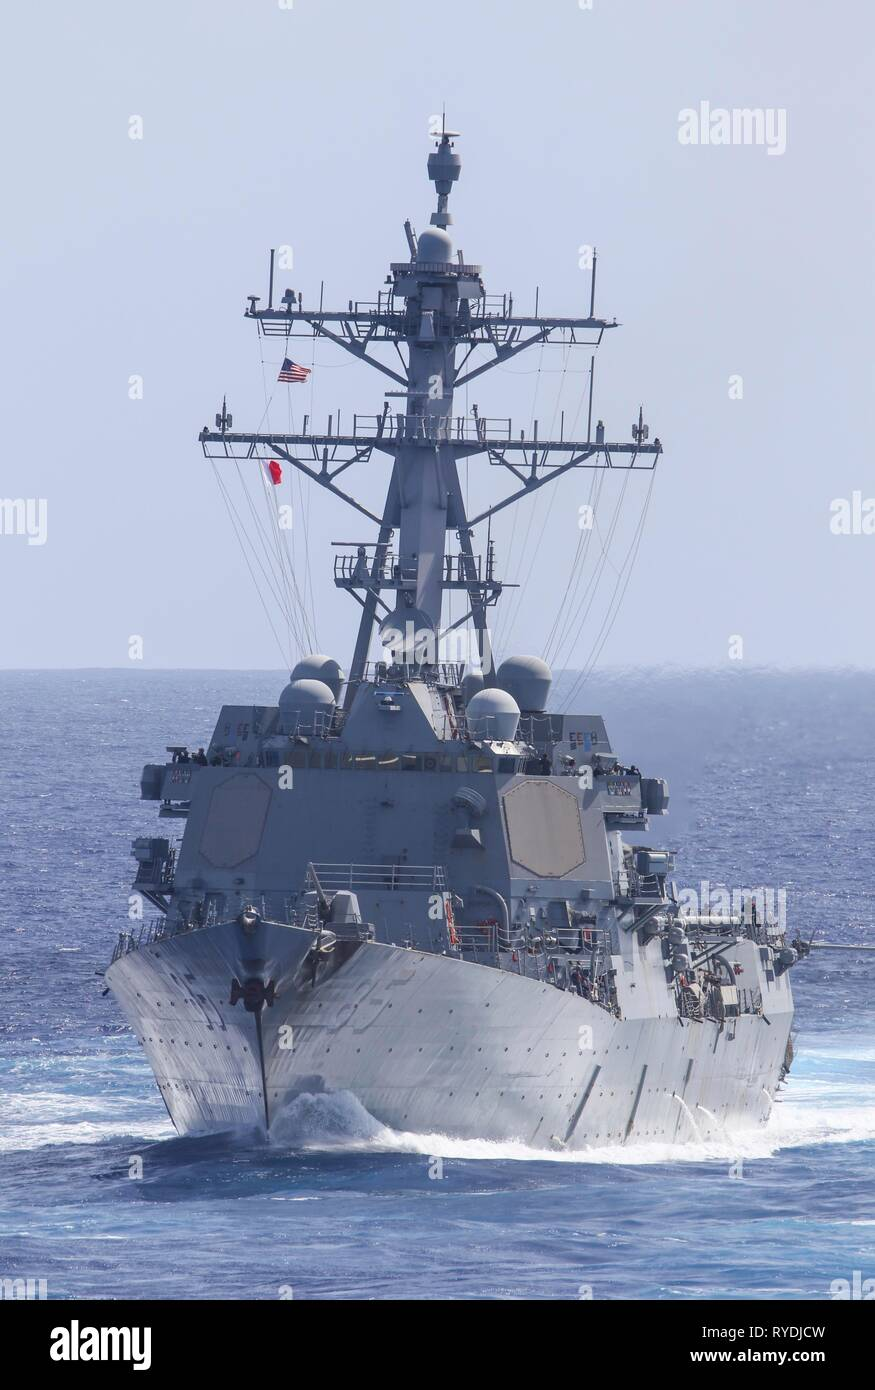 190311-N-DX072-1205 PACIFIC OCEAN (March 11, 2019) The Arleigh-Burke class guided-missile destroyer USS McCampbell (DDG 85) transits the Pacific Ocean during a training exercise with other U.S. Navy warships. U.S. Navy warships train together to increase the tactical proficiency, lethality, and interoperability of participating units in an Era of Great Power Competition. (U.S. Navy photo by Mass Communication Specialist 2nd Class Anaid Banuelos Rodriguez) Stock Photo